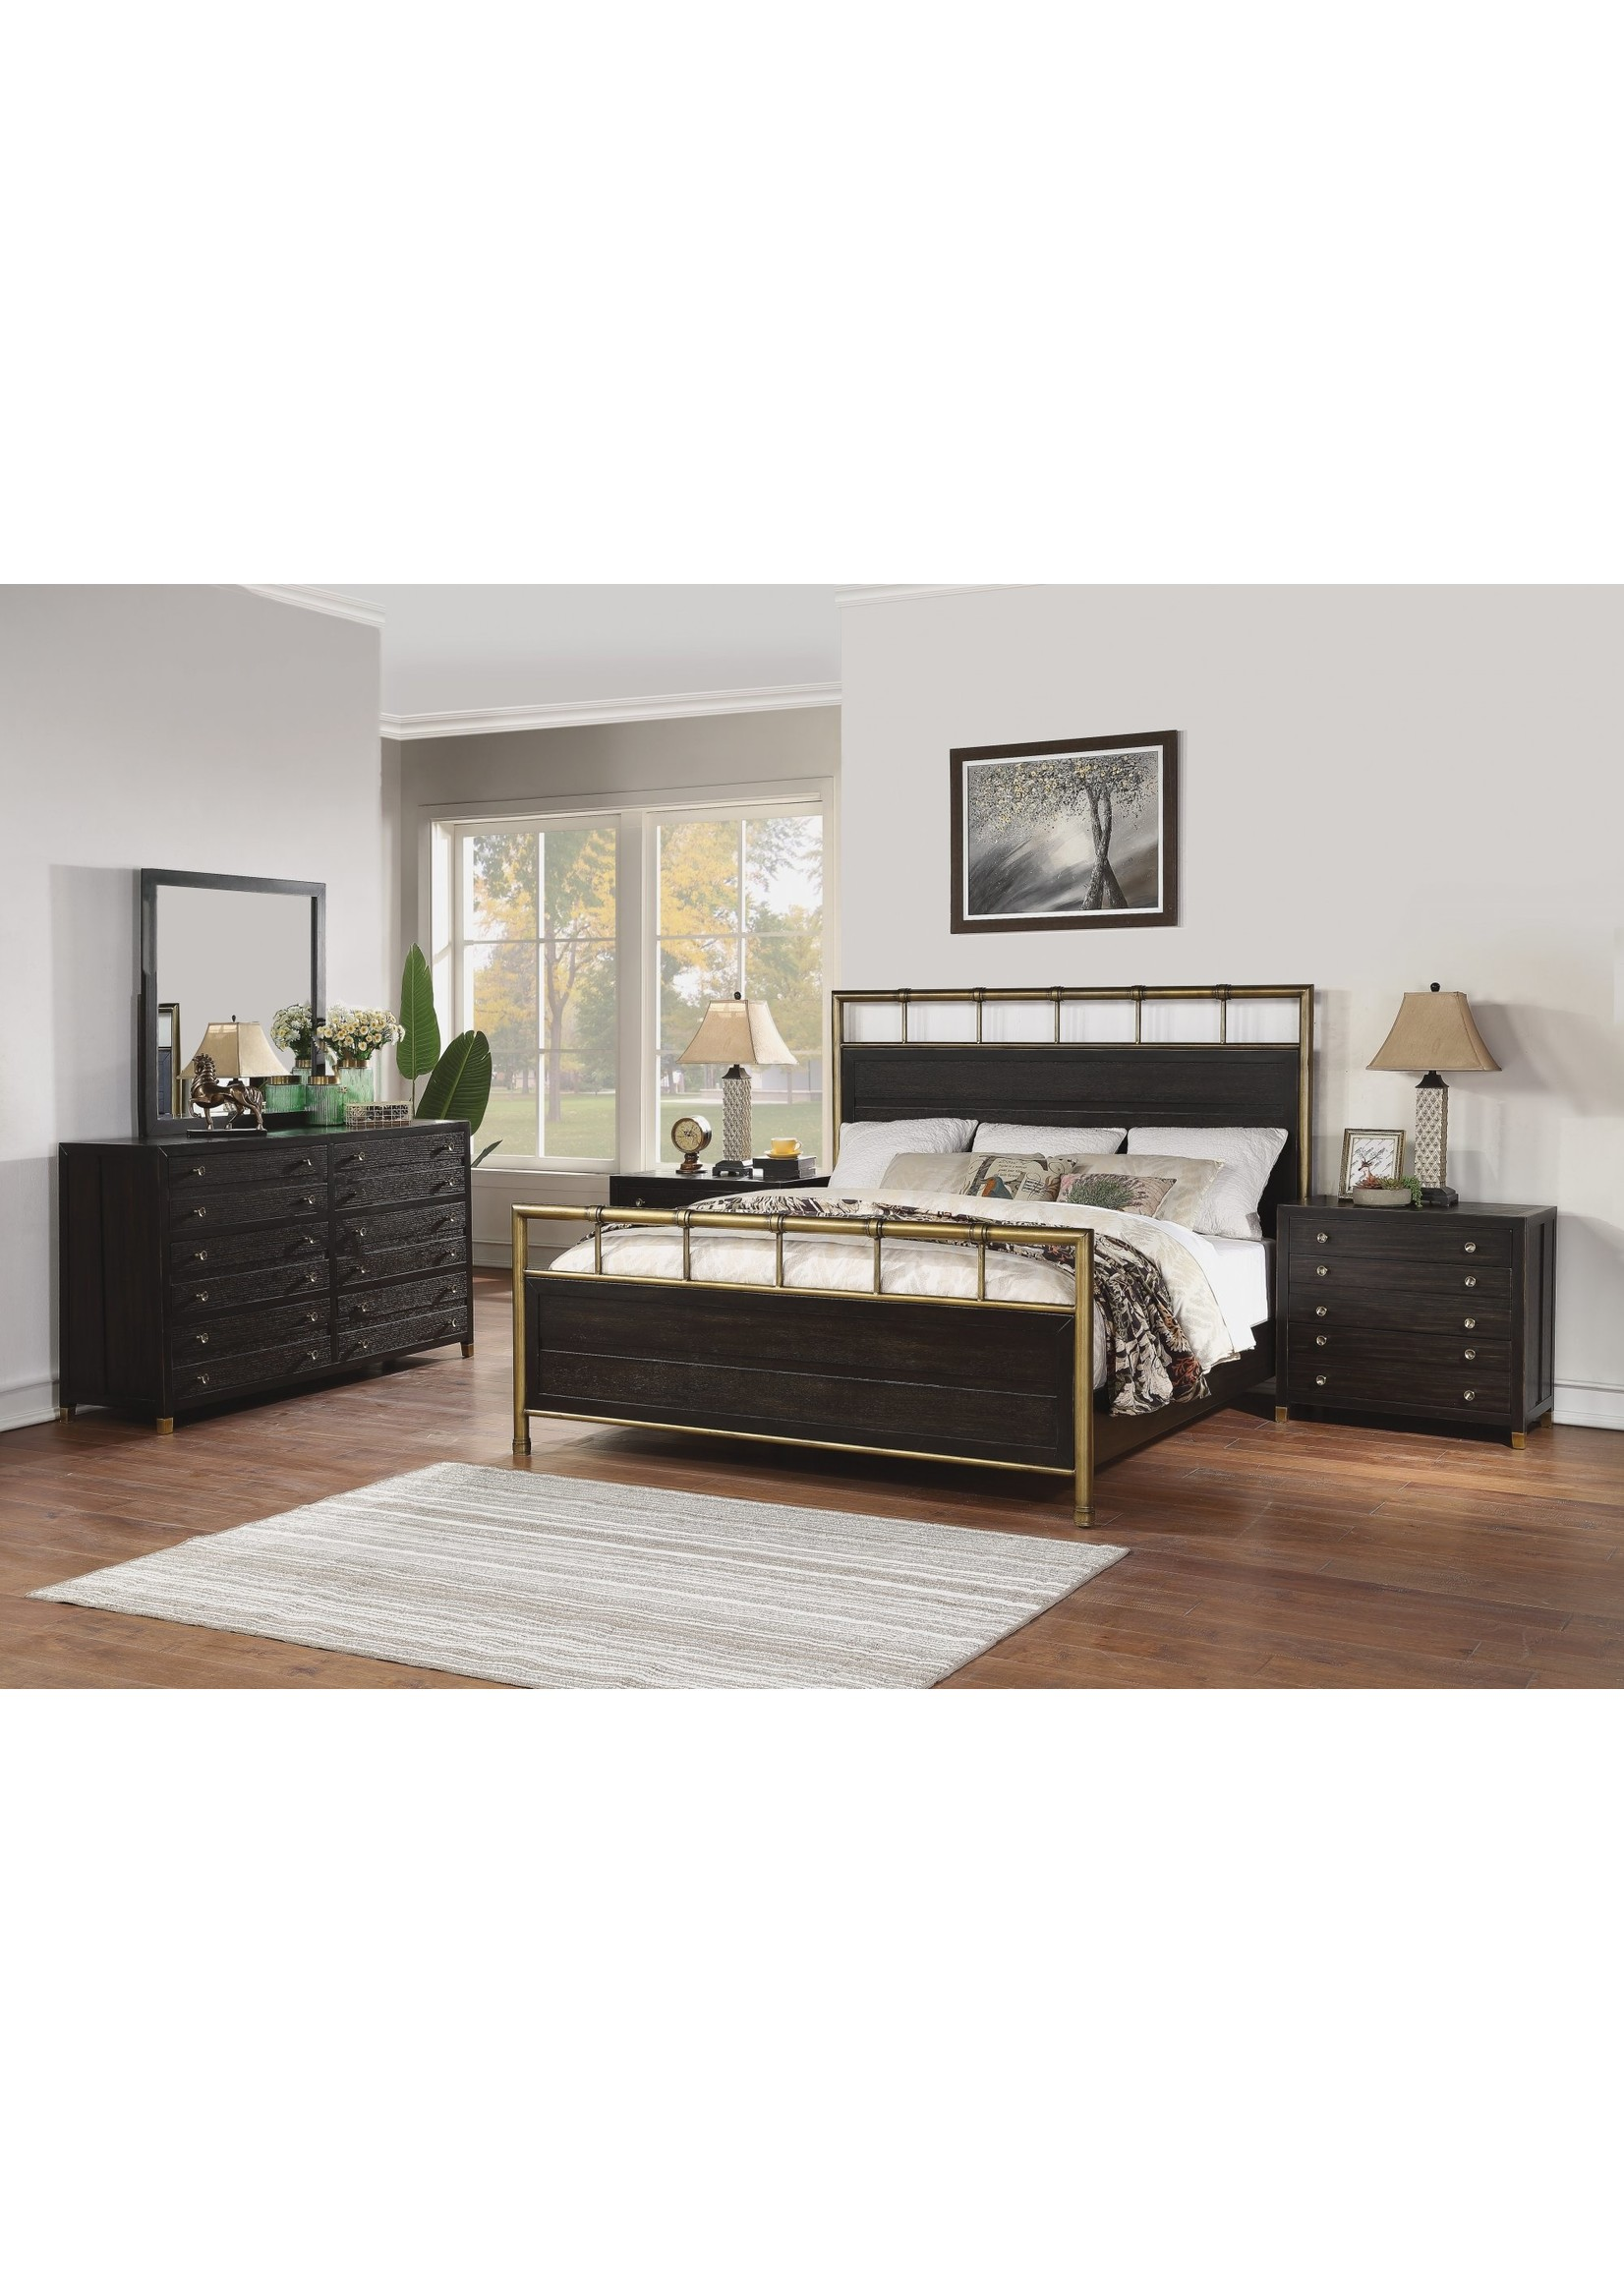 FLEXSTEEL COLOGNE 12 DRAWER DRESSER IN BLACK OAK